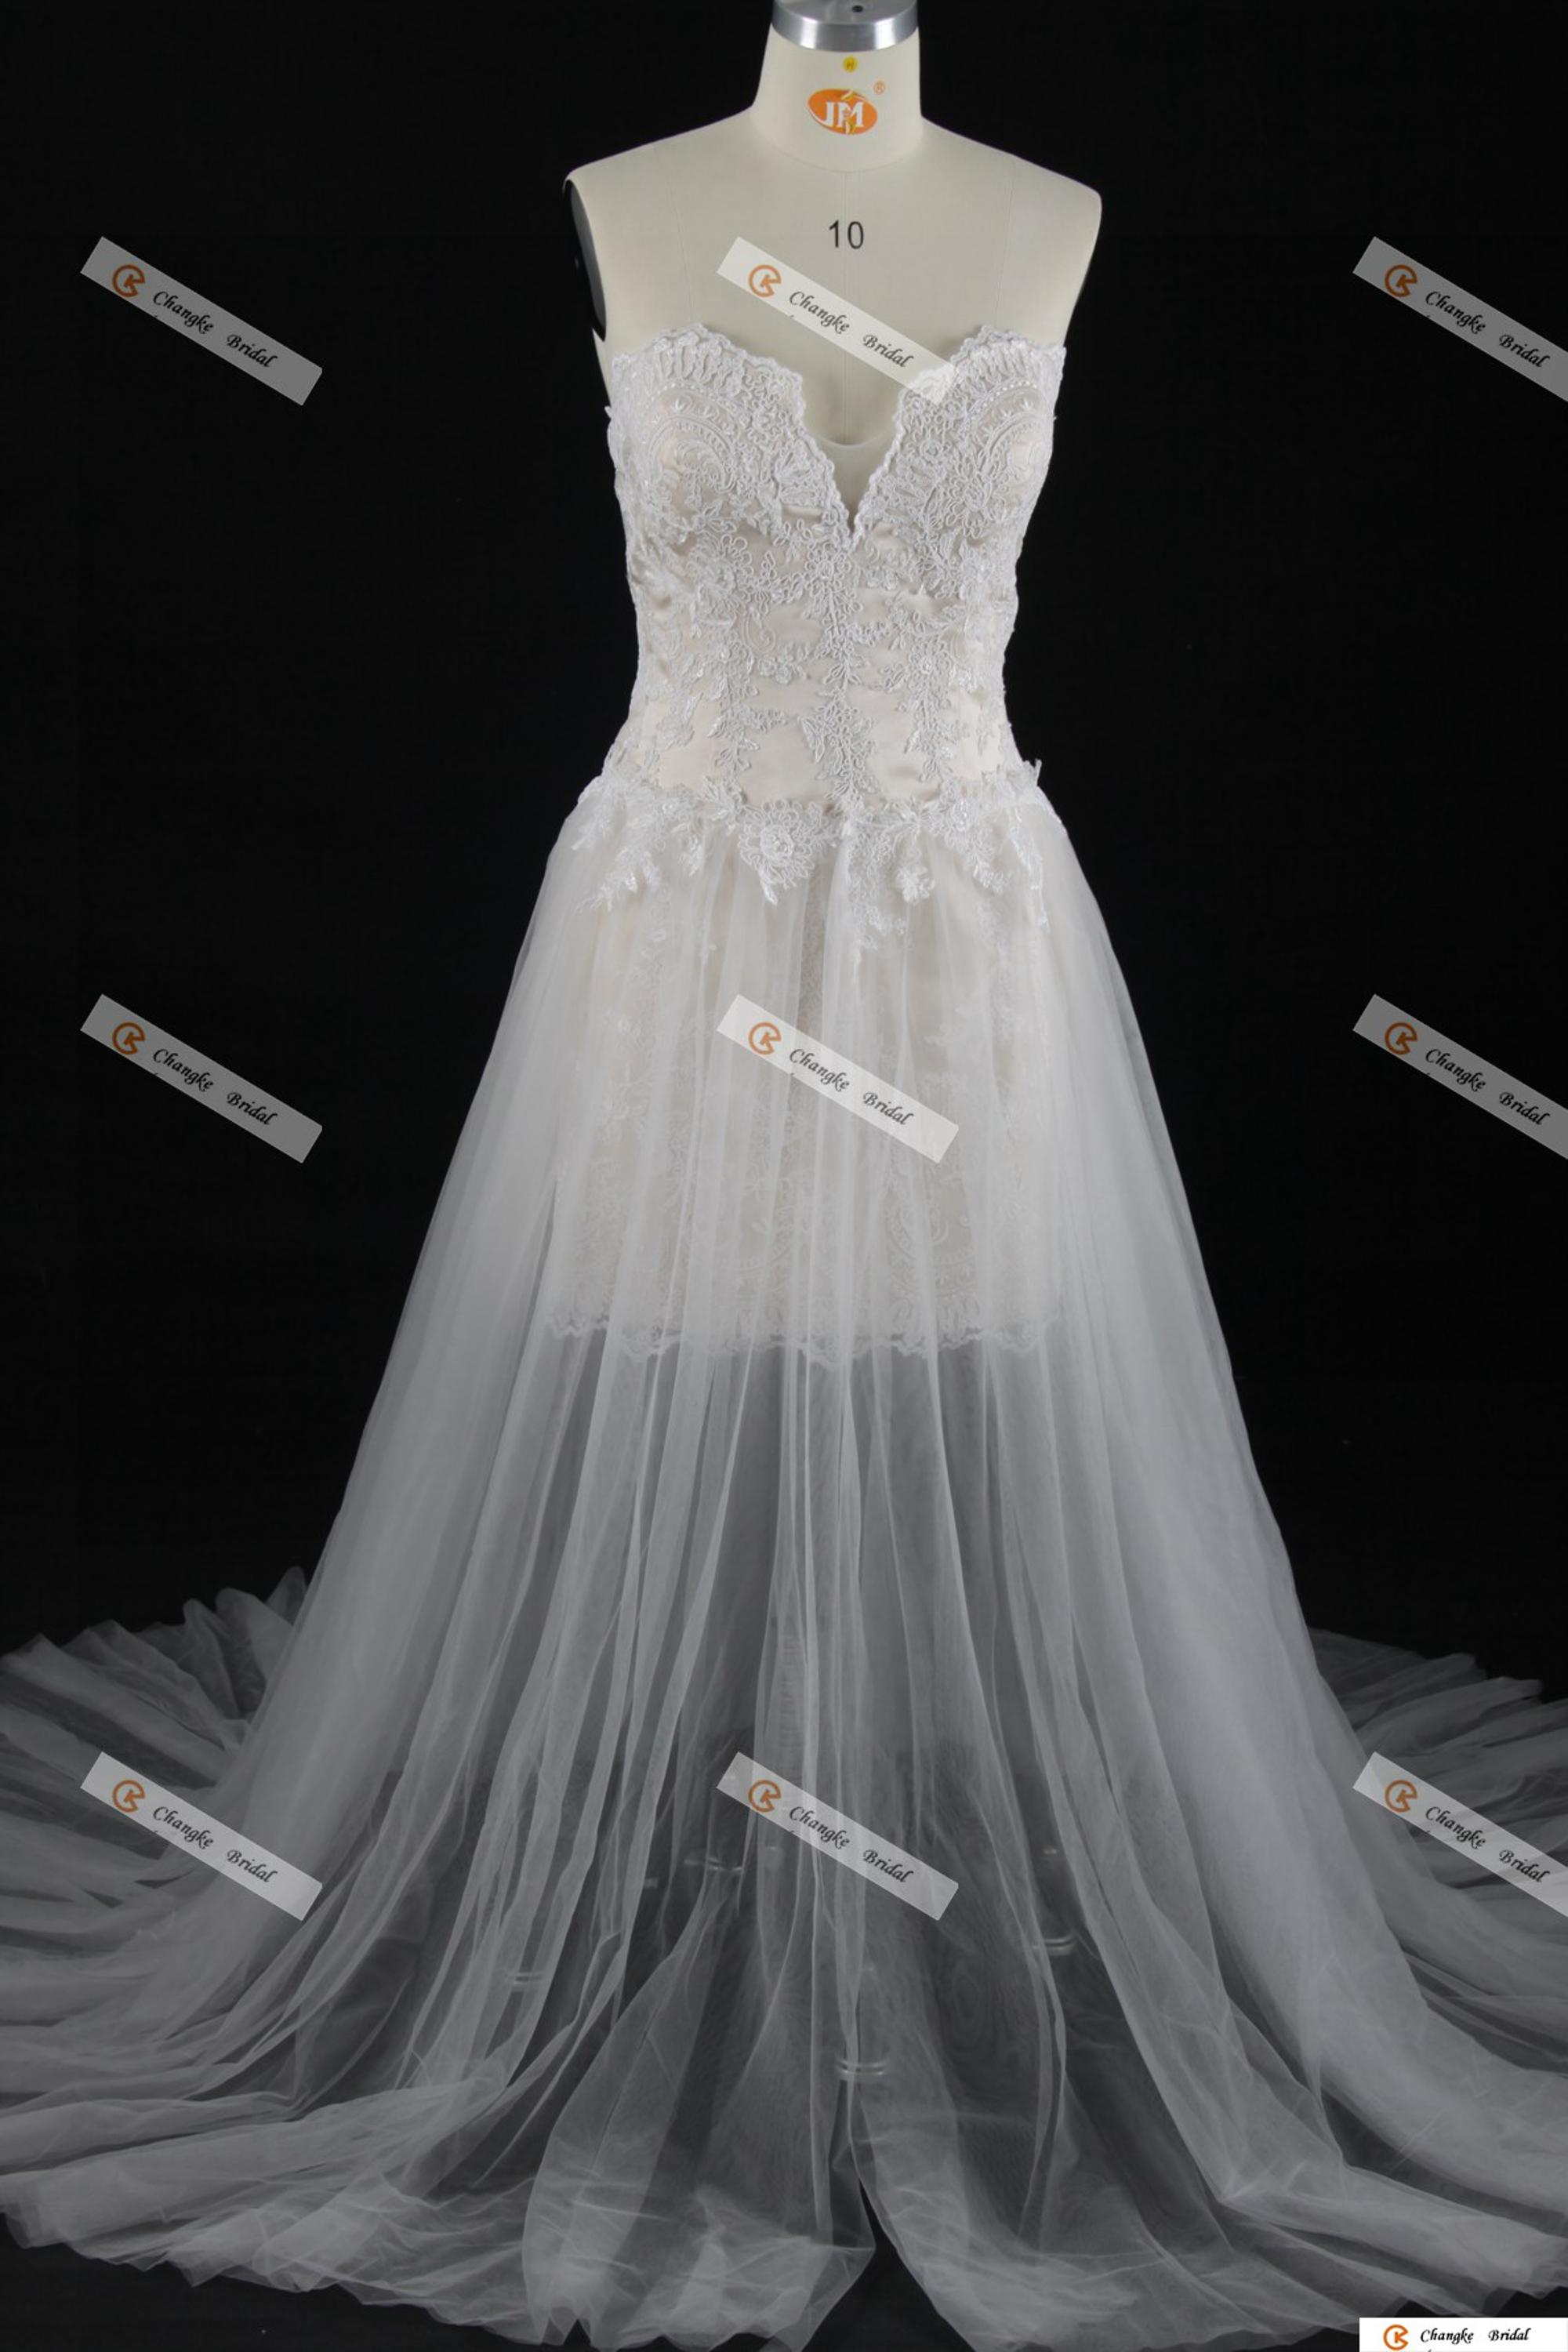 98b2a1a490e New Arrival Wholesale Sexy Strapless Lace short Wedding Dress with detachable  skirt